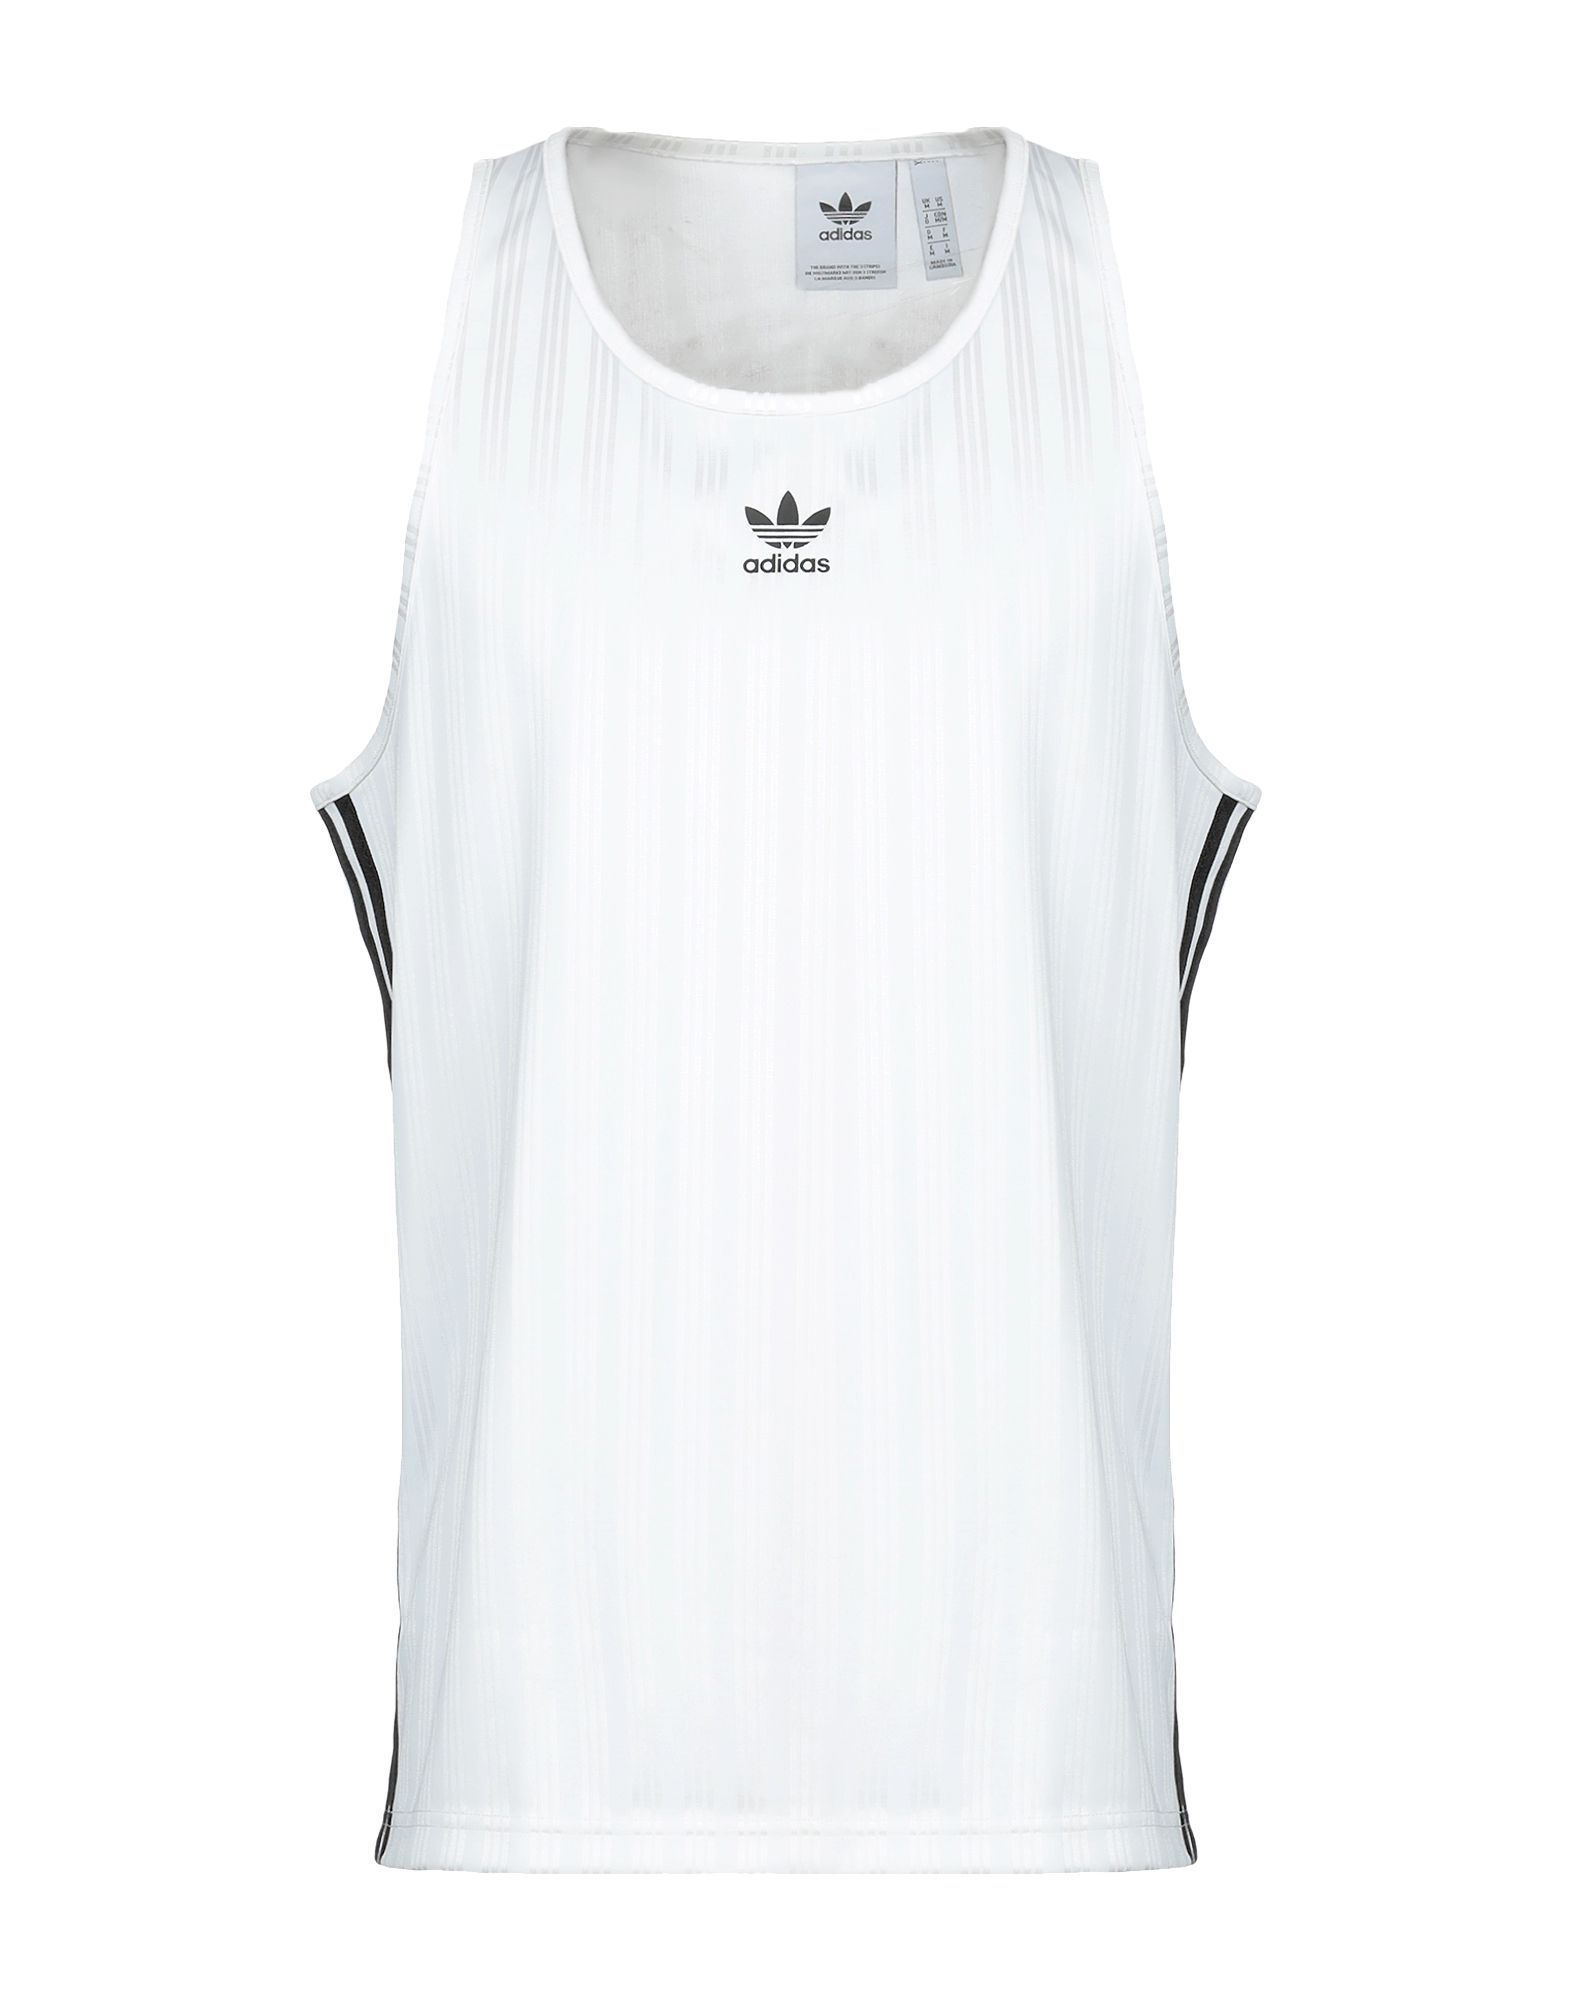 e0b692d5e ADIDAS ORIGINALS TANK TOPS.  adidasoriginals  cloth